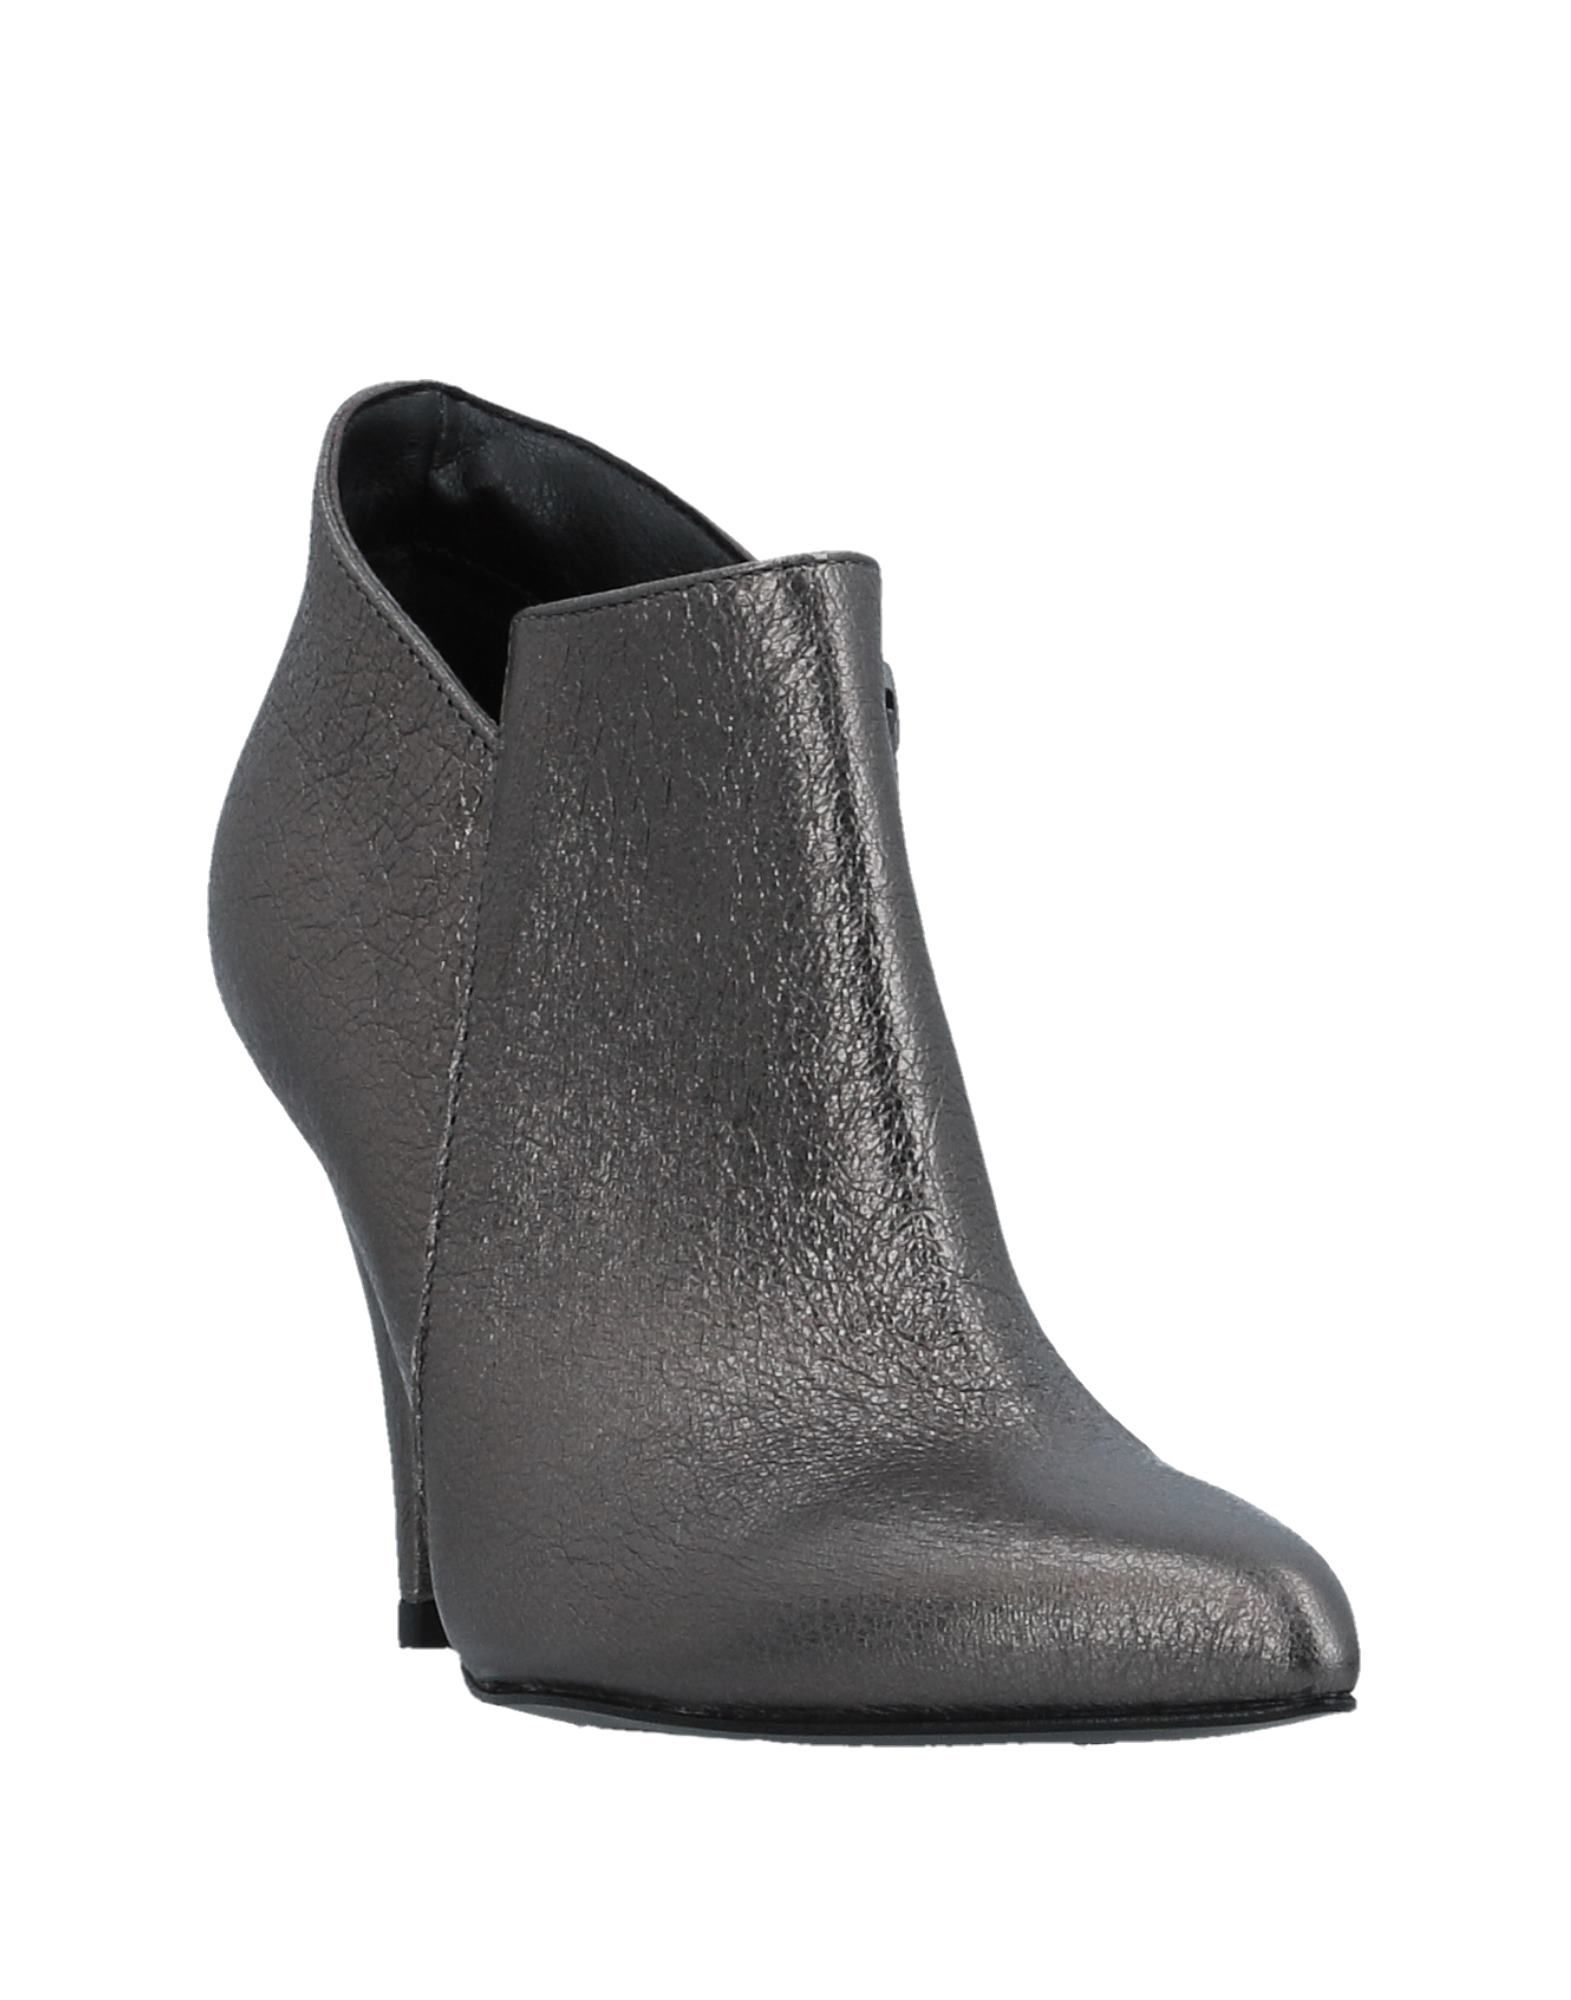 Bagatt Lead Leather Ankle Boots